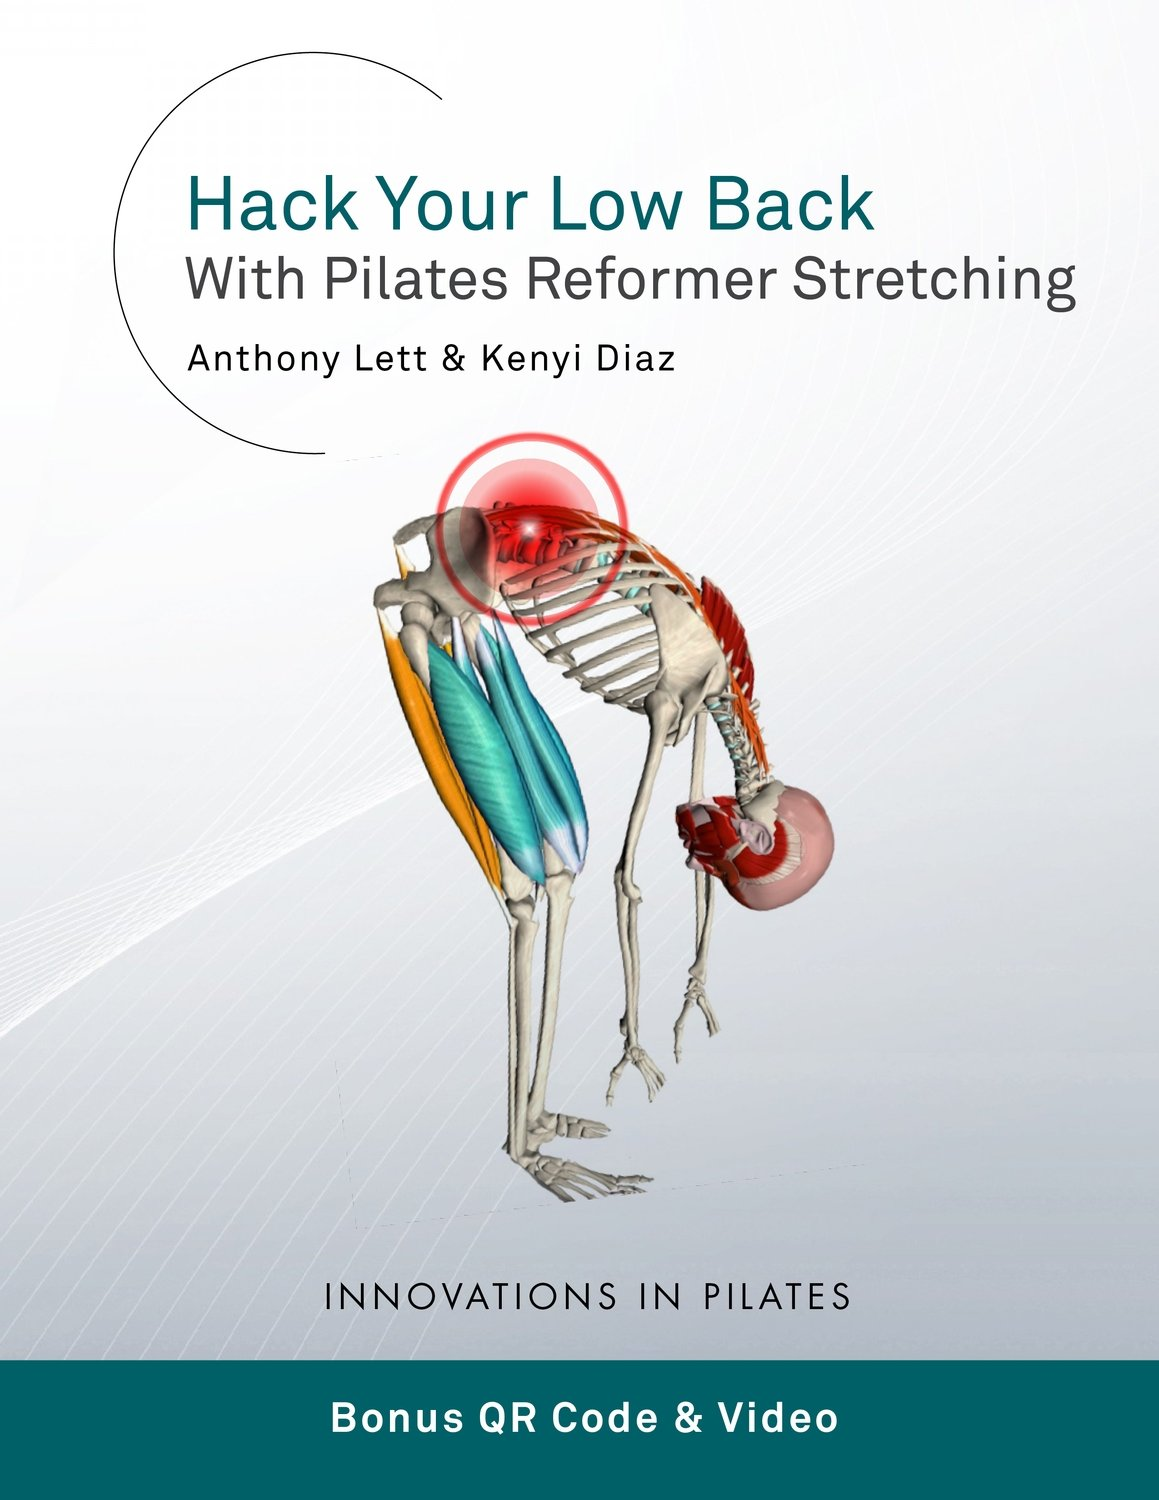 Hack Your Low Back With Pilates Reformer Stretching (Print)